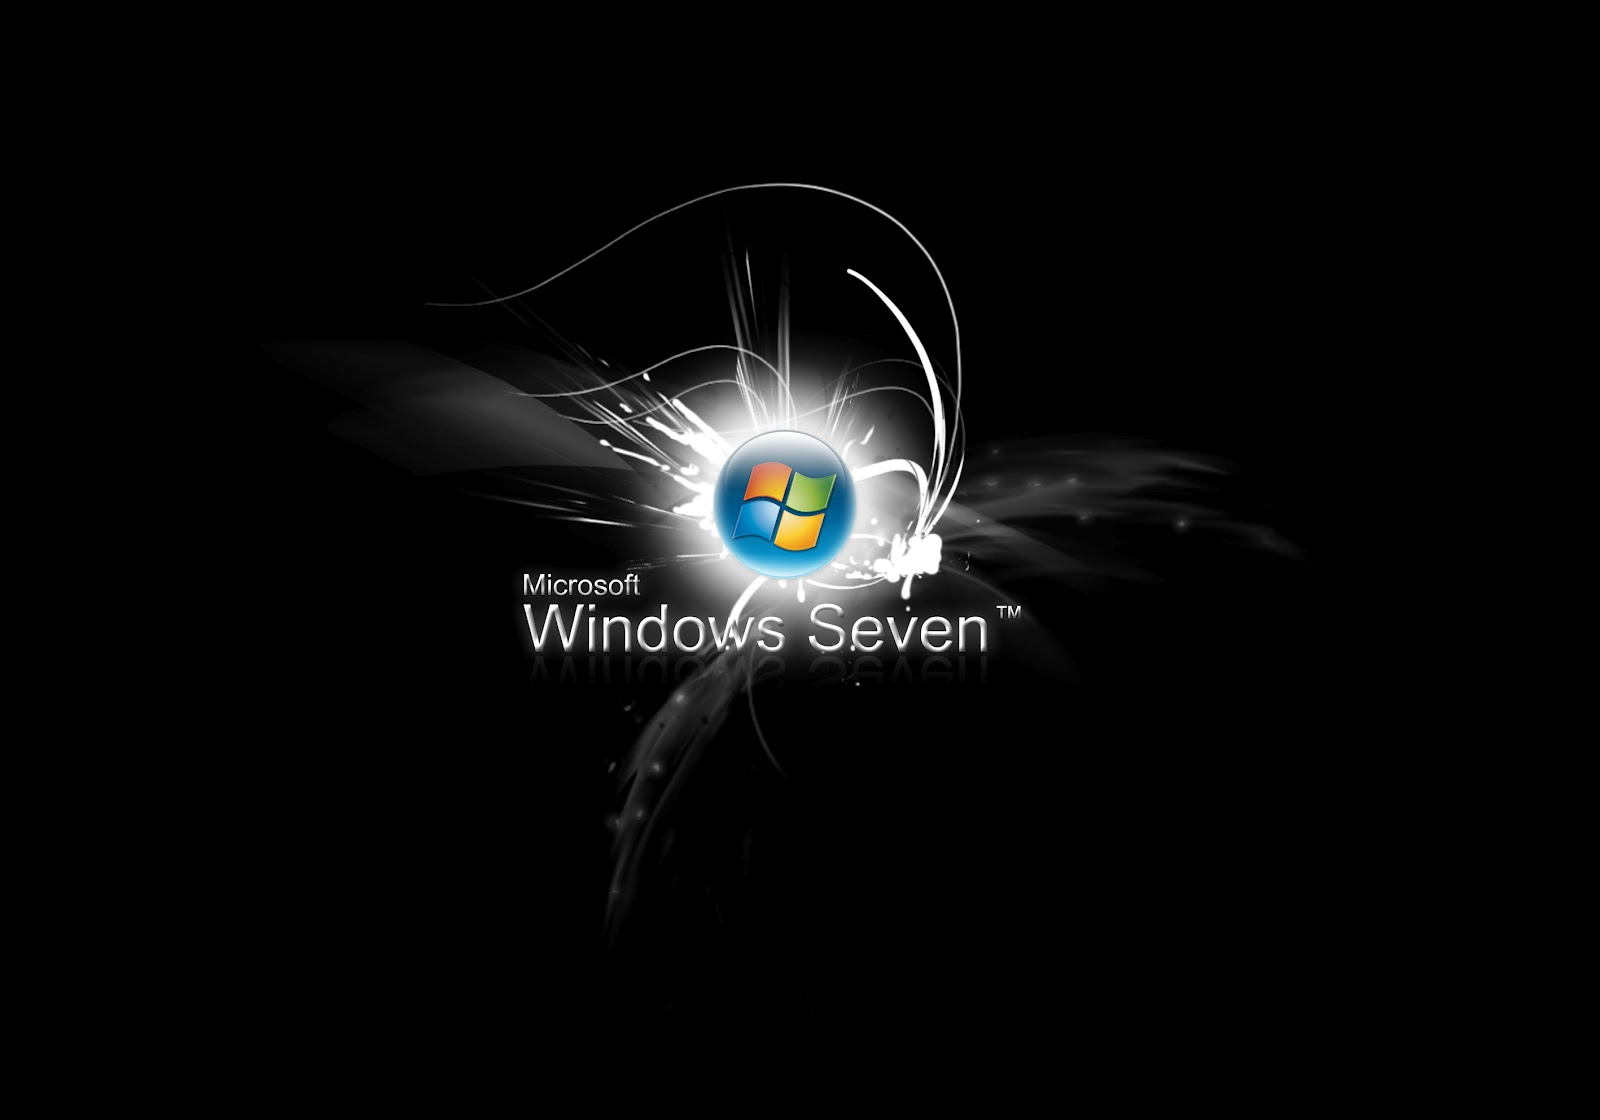 Amazing Windows 7 Wallpapers - Wallpapers